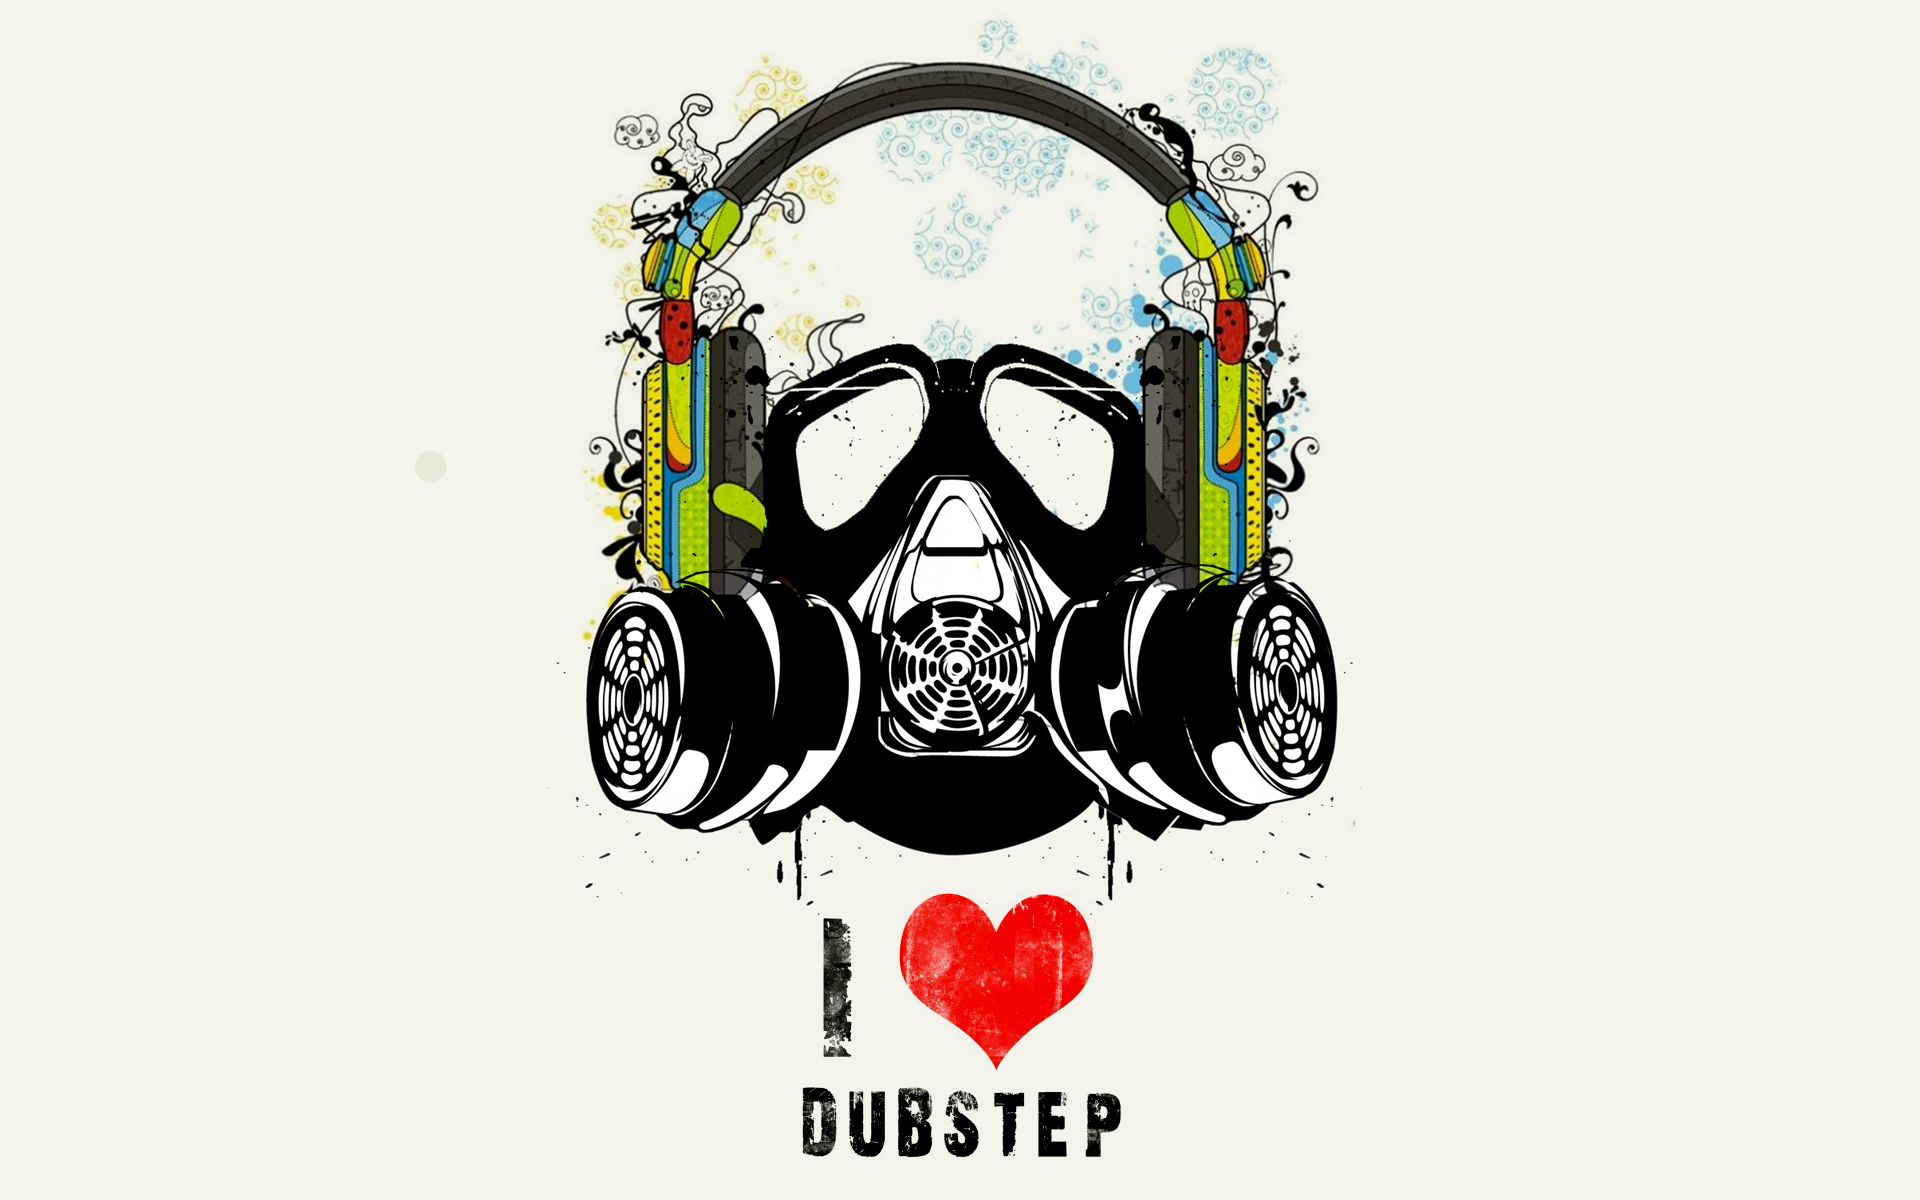 Cool Dubstep Wallpaper Wallpapersafari